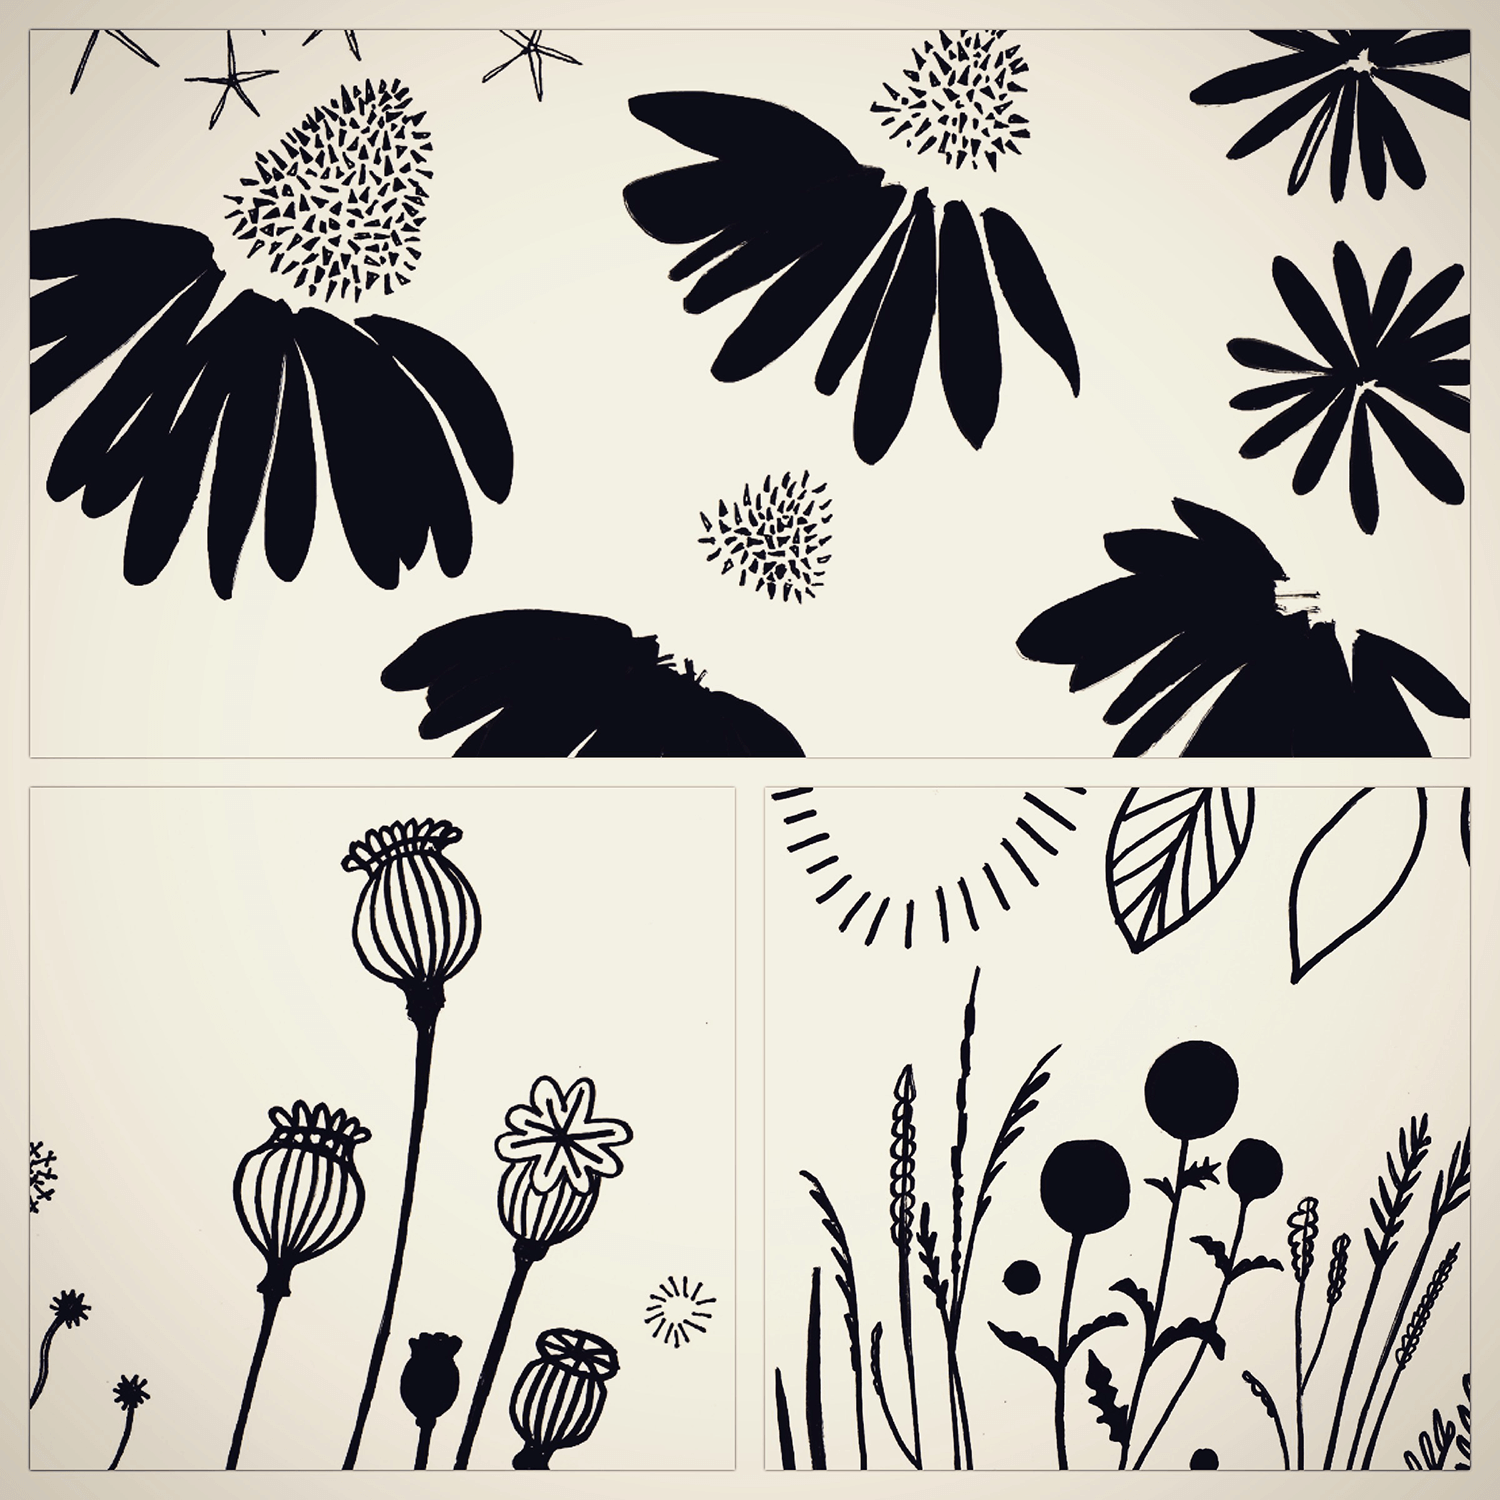 Some flower elements, to be scanned and made into vectors. These were coloured and composited together digitally to form the basis of a new brand identity for a gardening business.